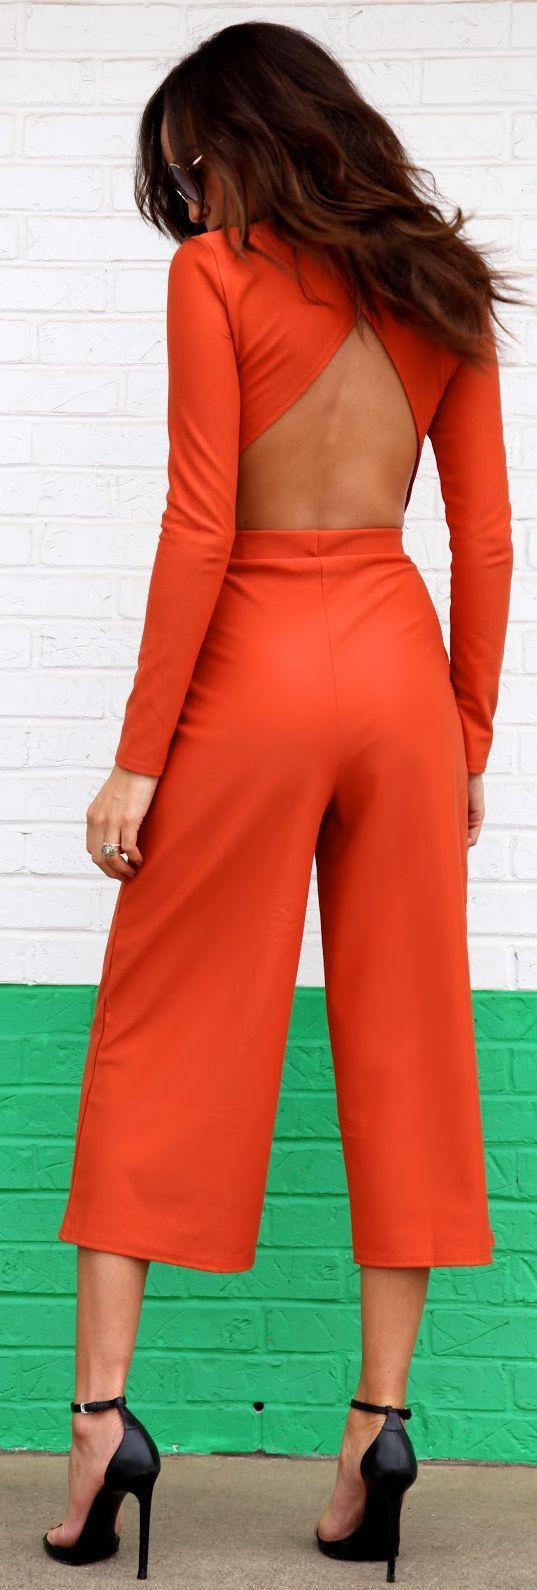 Tangerine Co-ord Set by Ring My Bell. Orange summer women fashion outfit clothing style apparel @roressclothes closet ideas